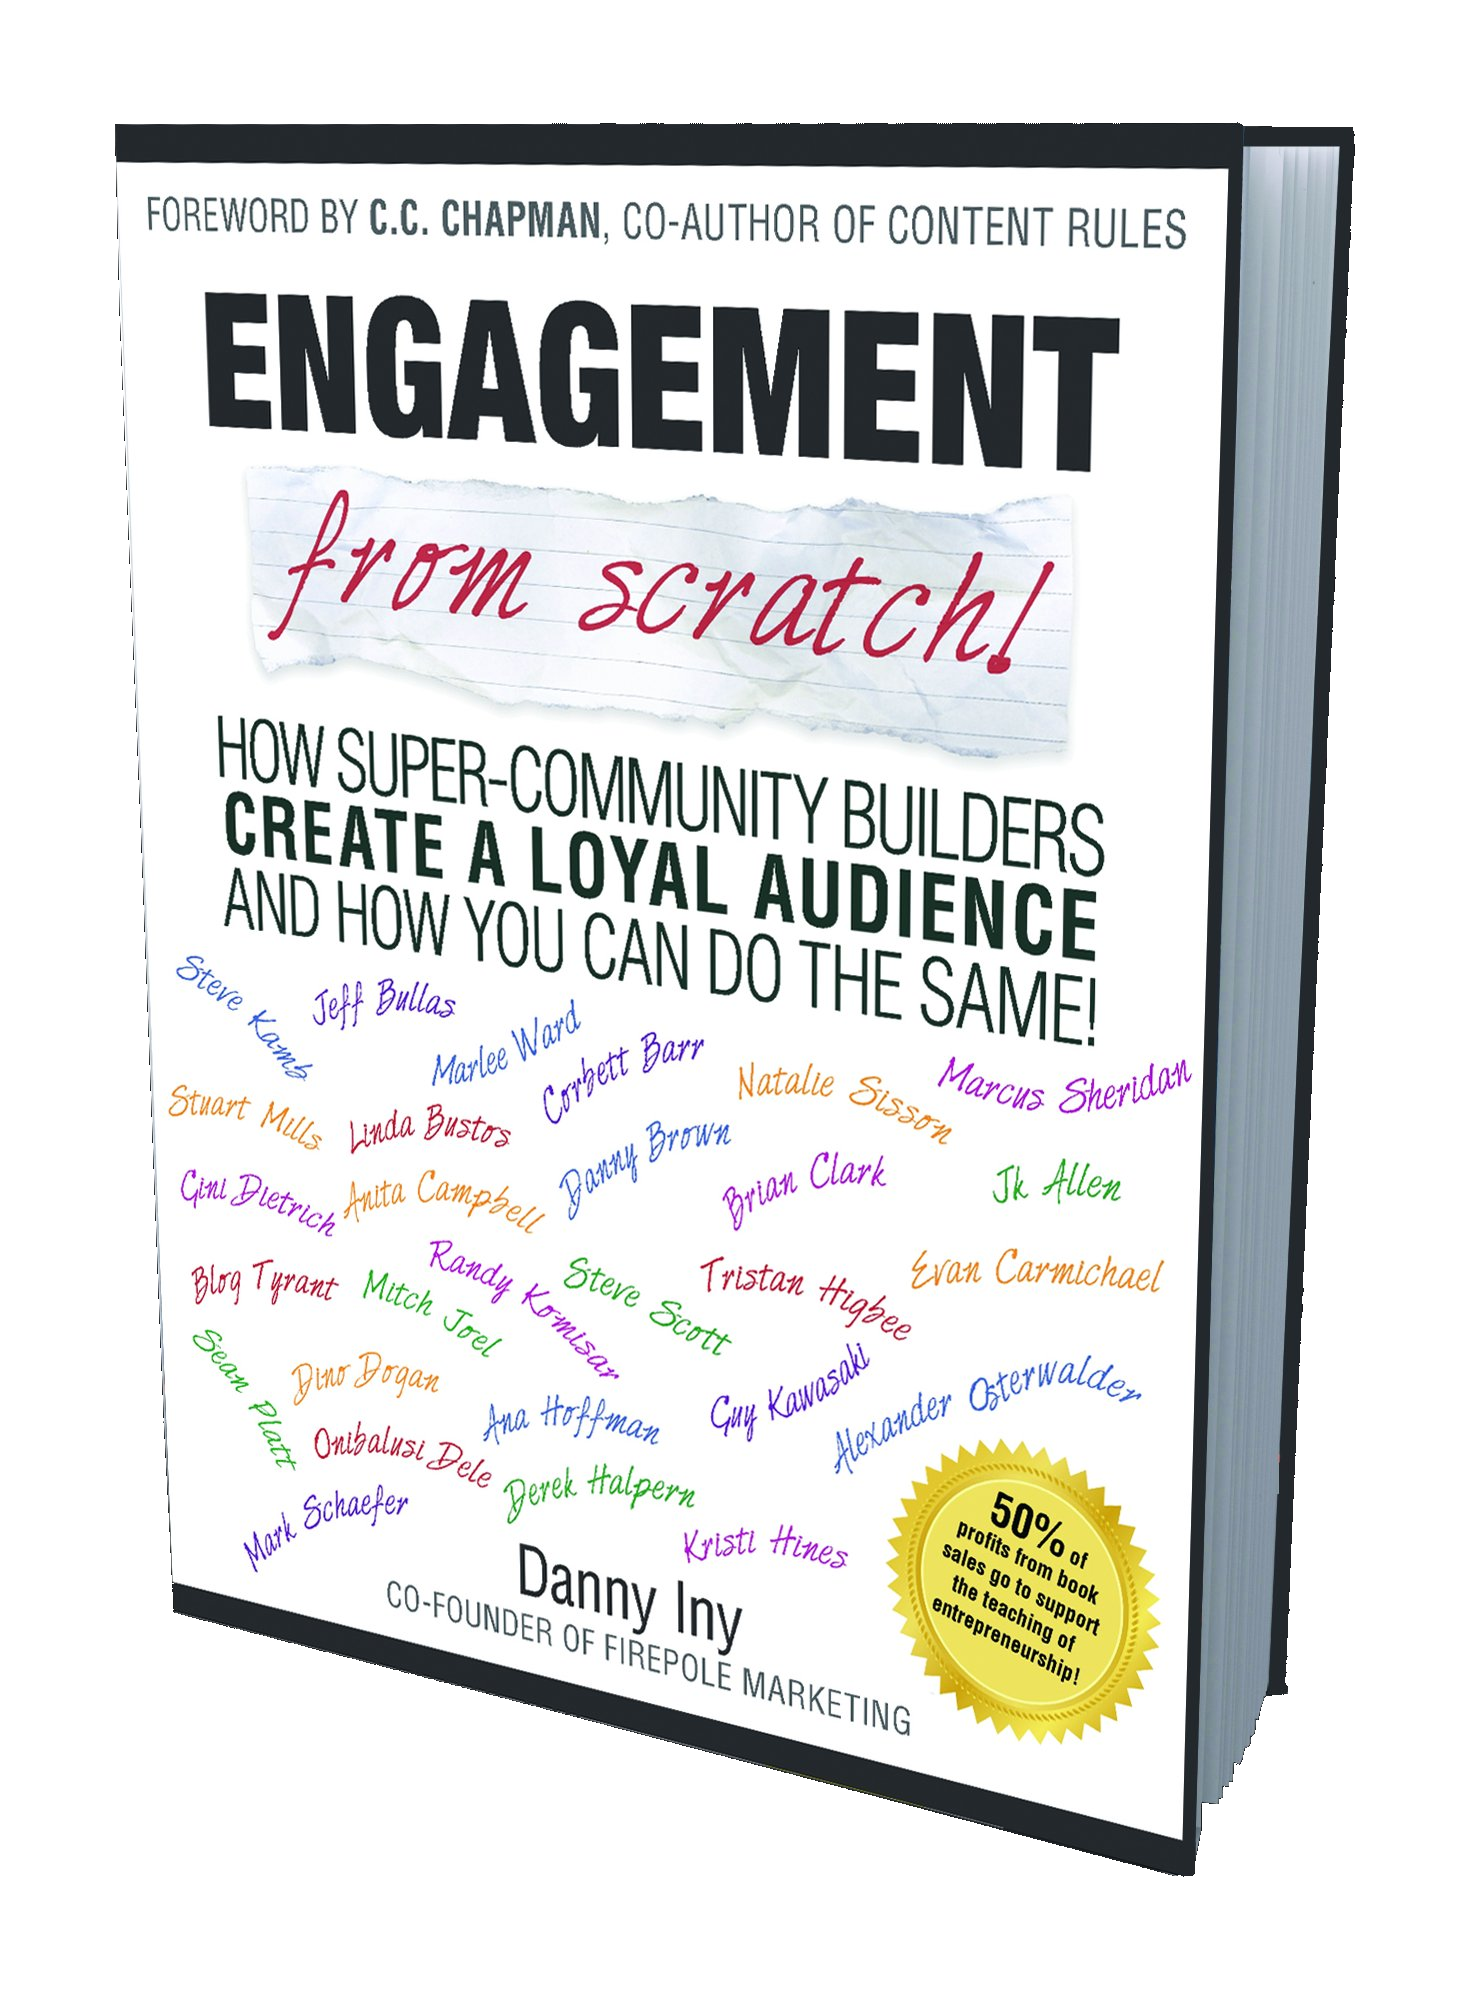 Danny Iny's 'Engagement From Scratch!' book cover